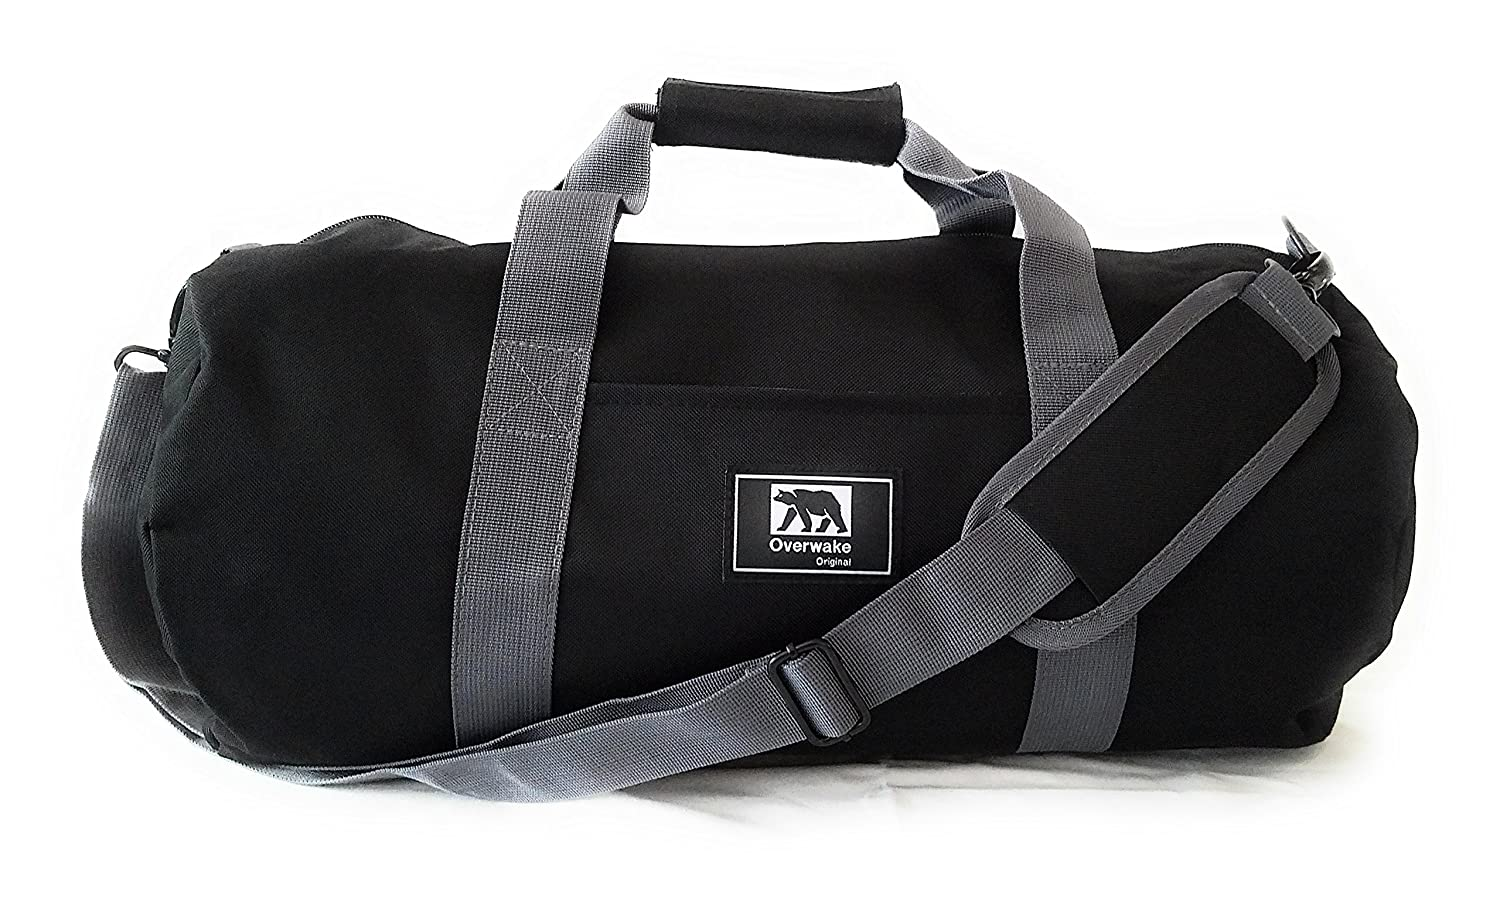 2aebc12f67d6 Small Gym Bag for Men and Women Sports Travel Duffle Overwake Original  Black 19 inch Updated 2019 Model